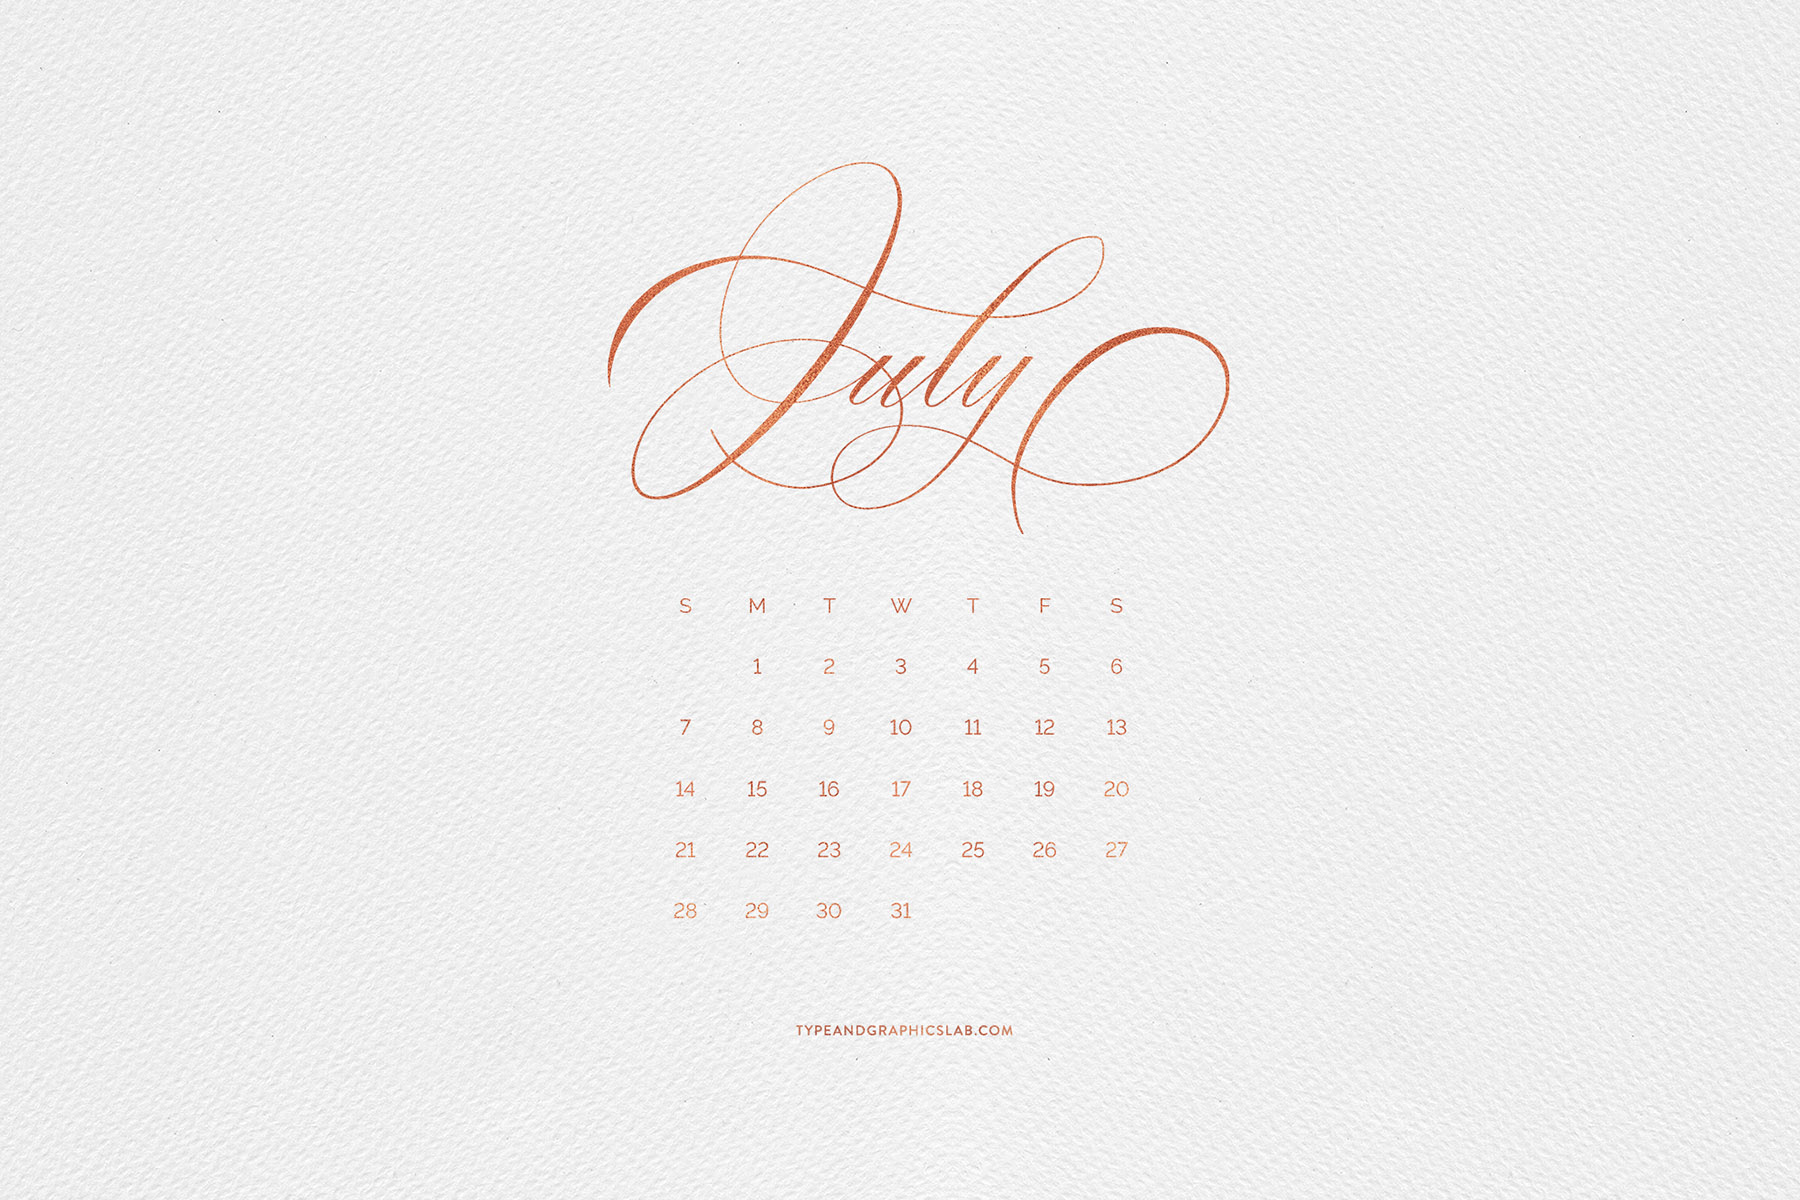 Download free desktop, mobile, and printable calendar for July 2019 | © typeandgraphicslab.com | For personal use only